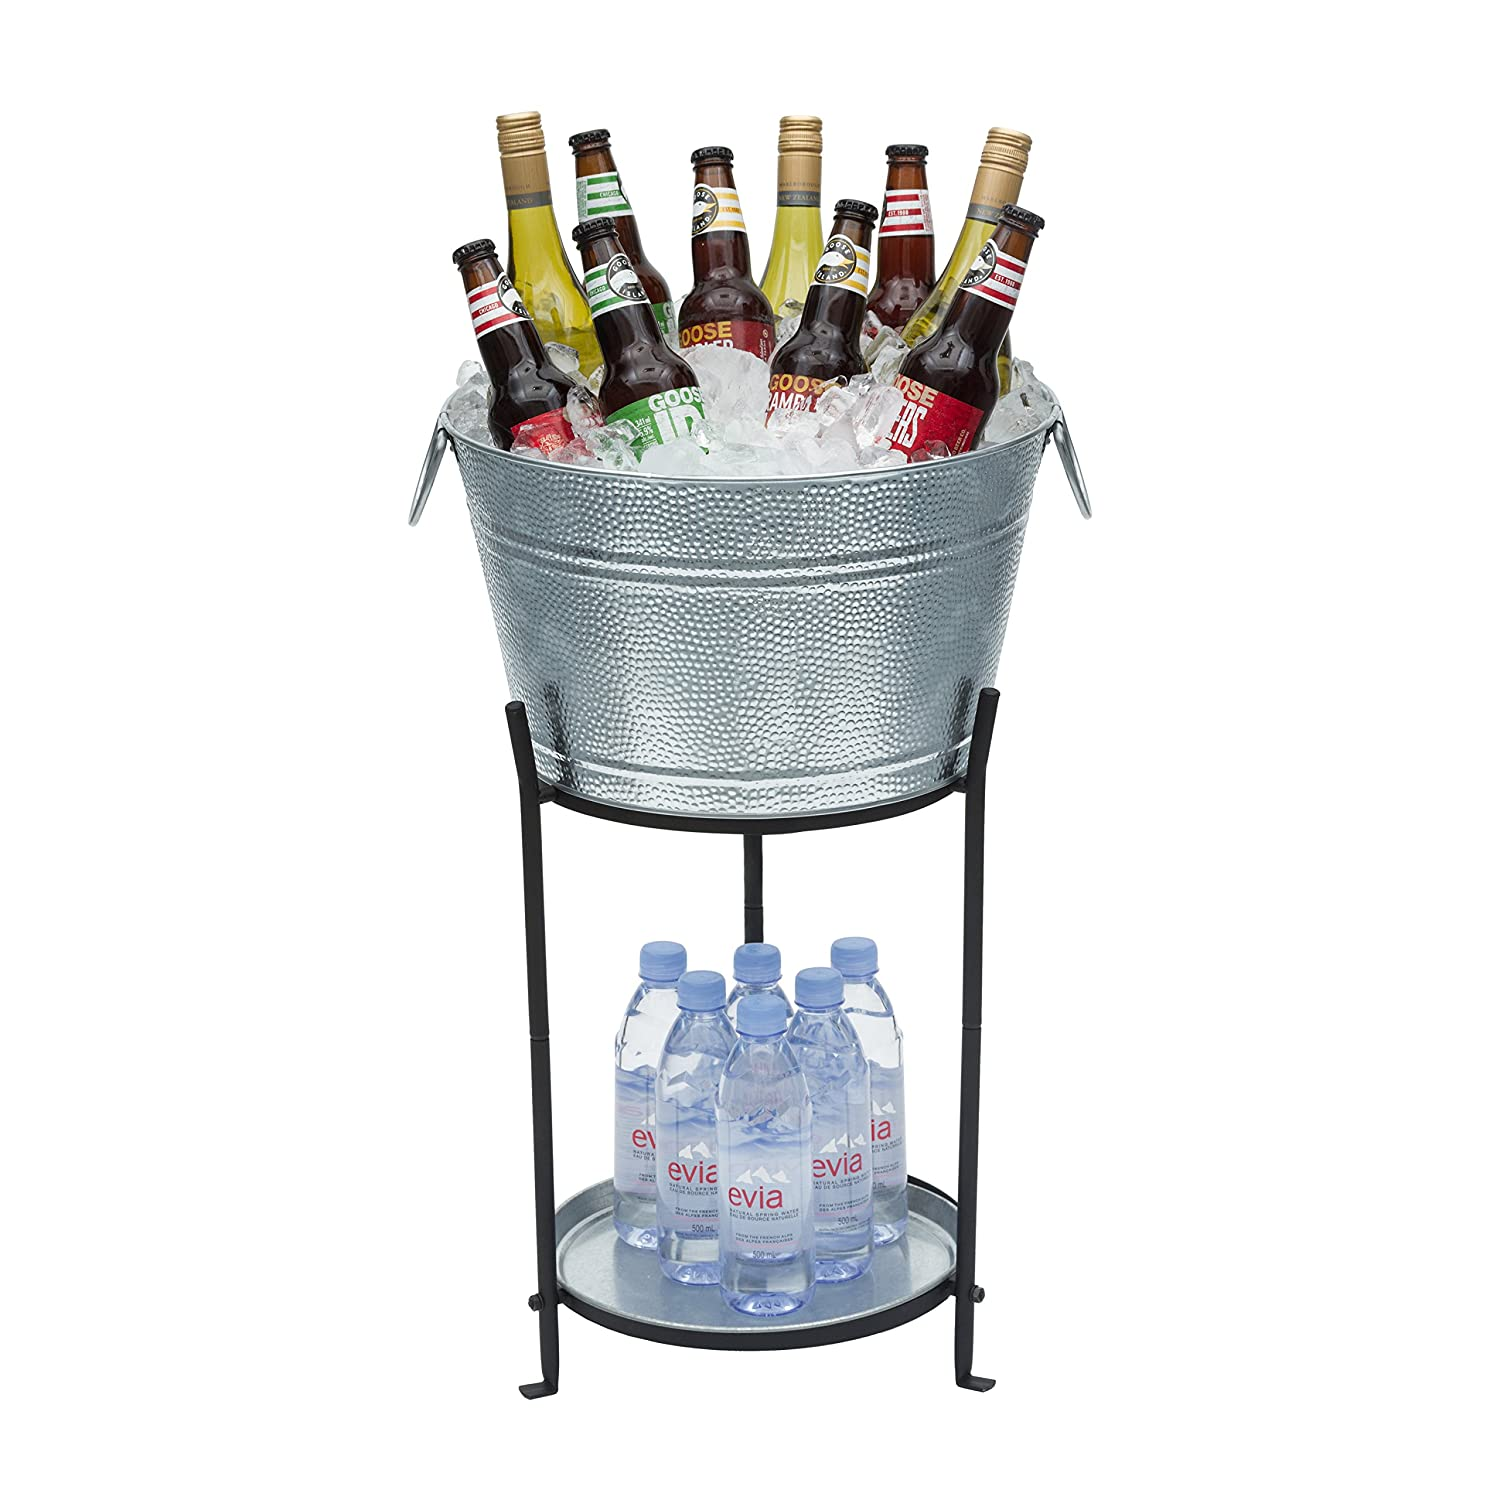 Ice Bucket With Stand and Tray. Galvanized Party Tub Is Perfect for Holding Beer, Wine, Champagne or Any Beverage. Large Size. Superior Construction, No Leaks or Wobbles. My Amazing Ice Bucket C-60